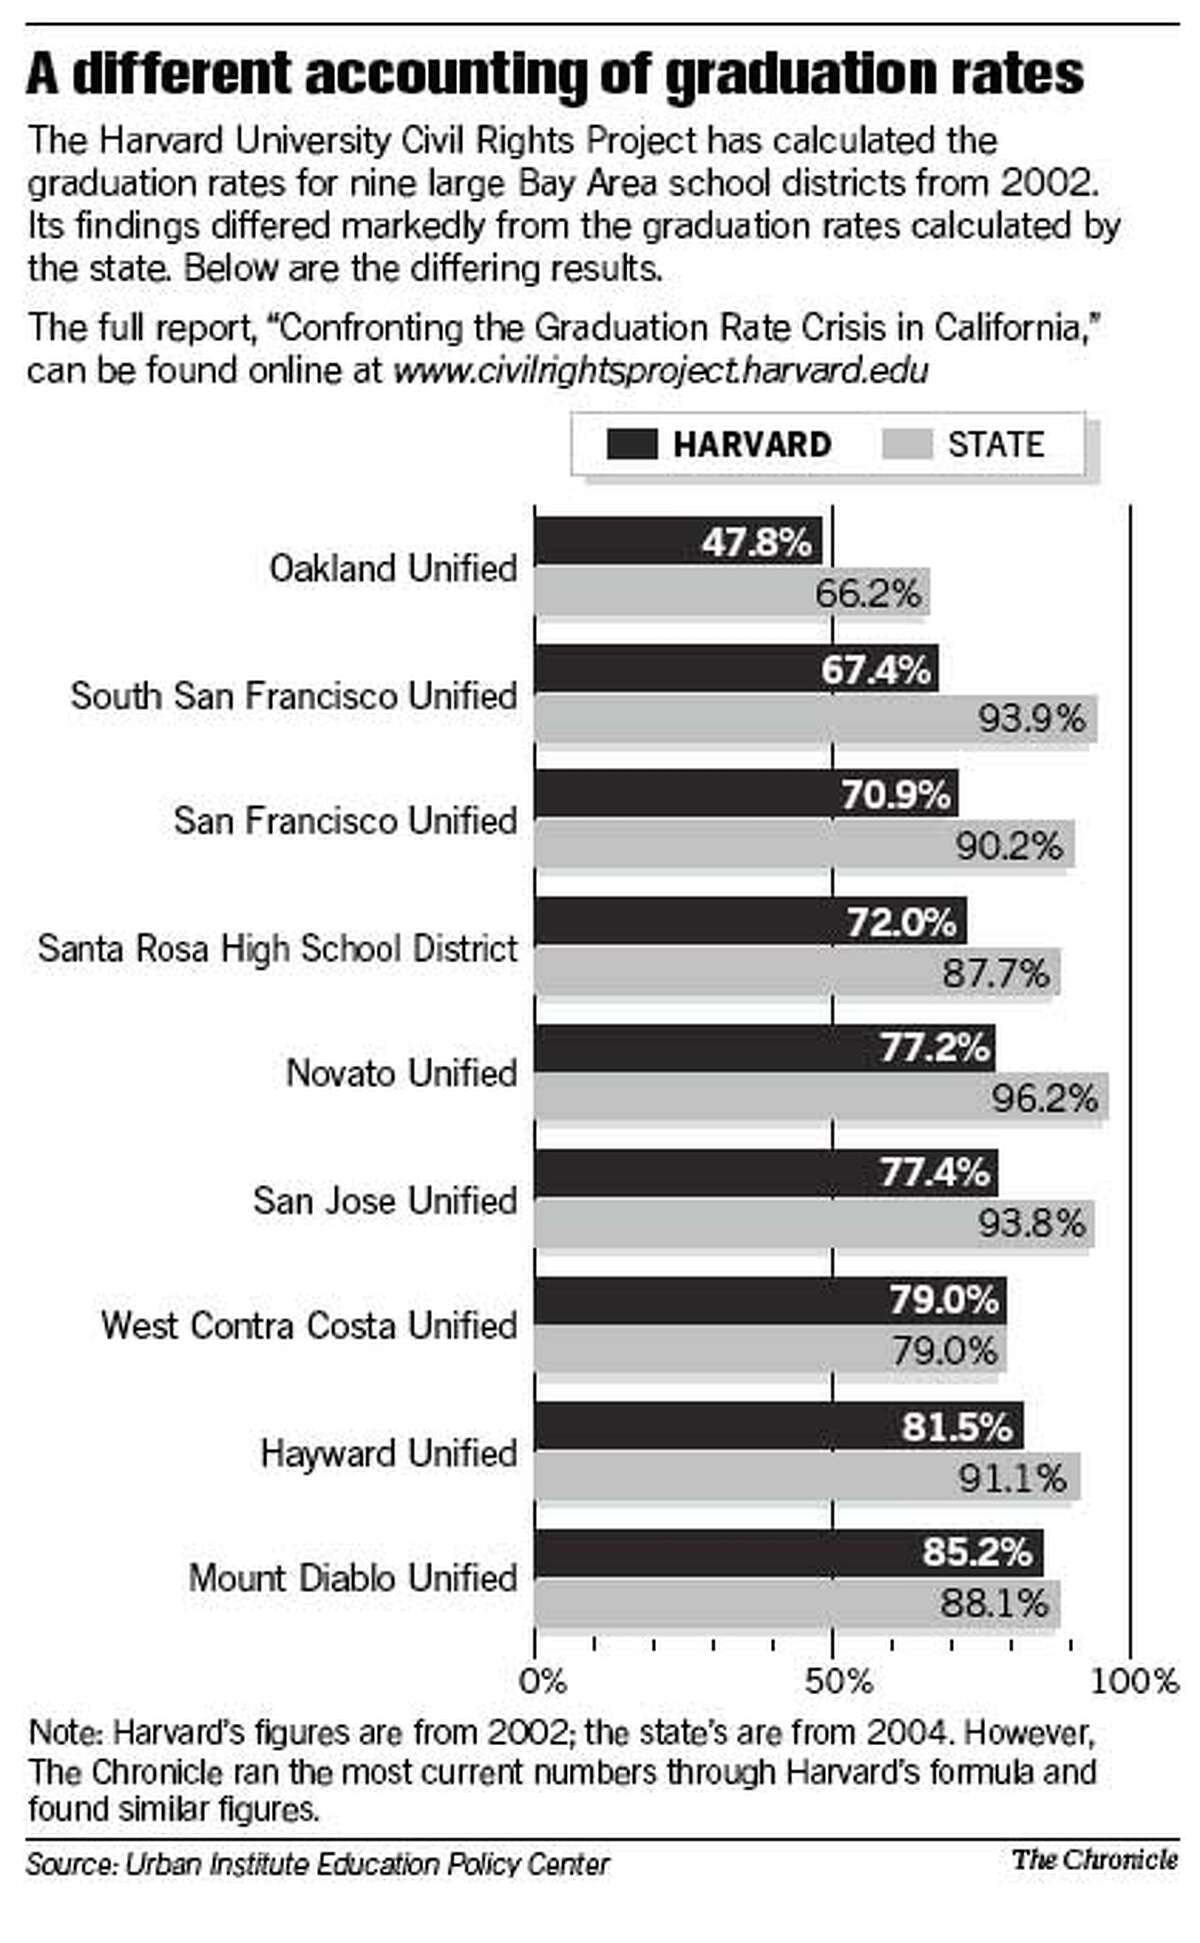 A Different Accounting of Graduation Rates. Chronicle Graphic